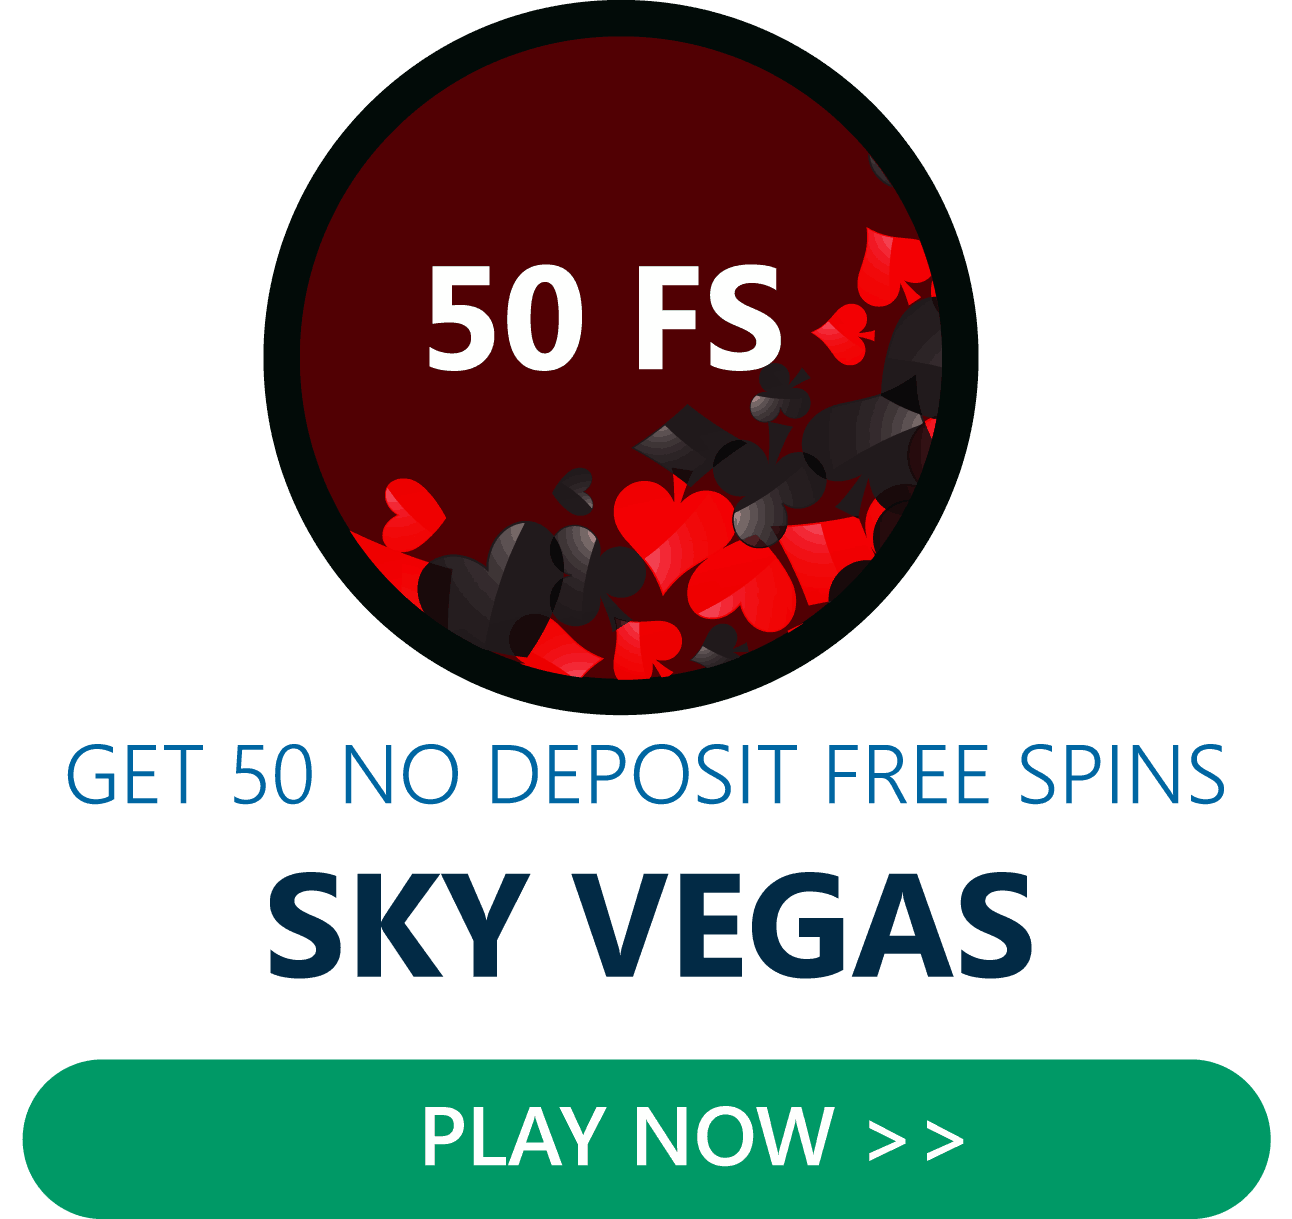 Sky Vegas casino promotions and bonus offers